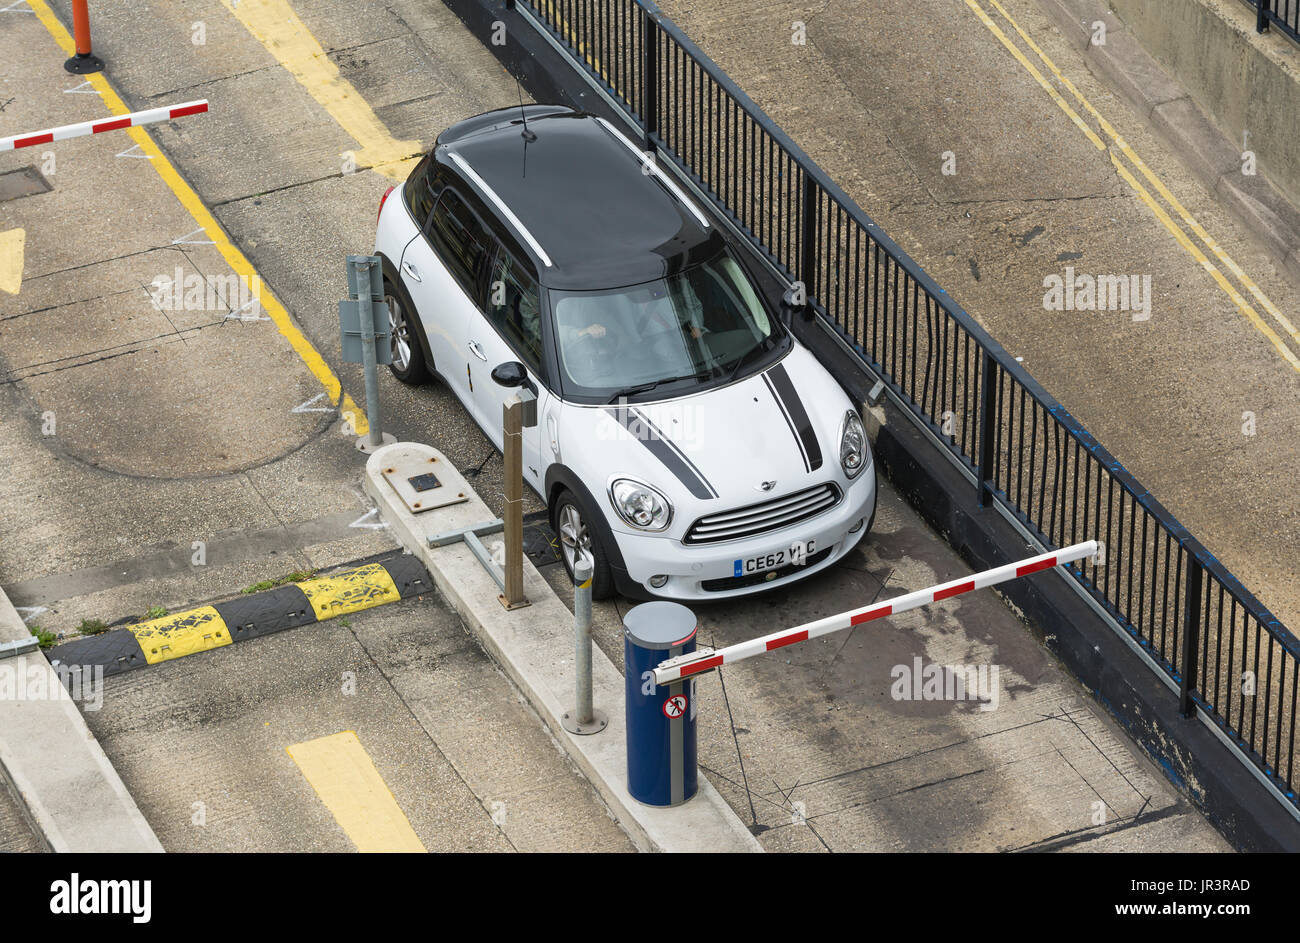 Car waiting at a lowered barrier at the entrance of a multi storey car park in the UK. - Stock Image